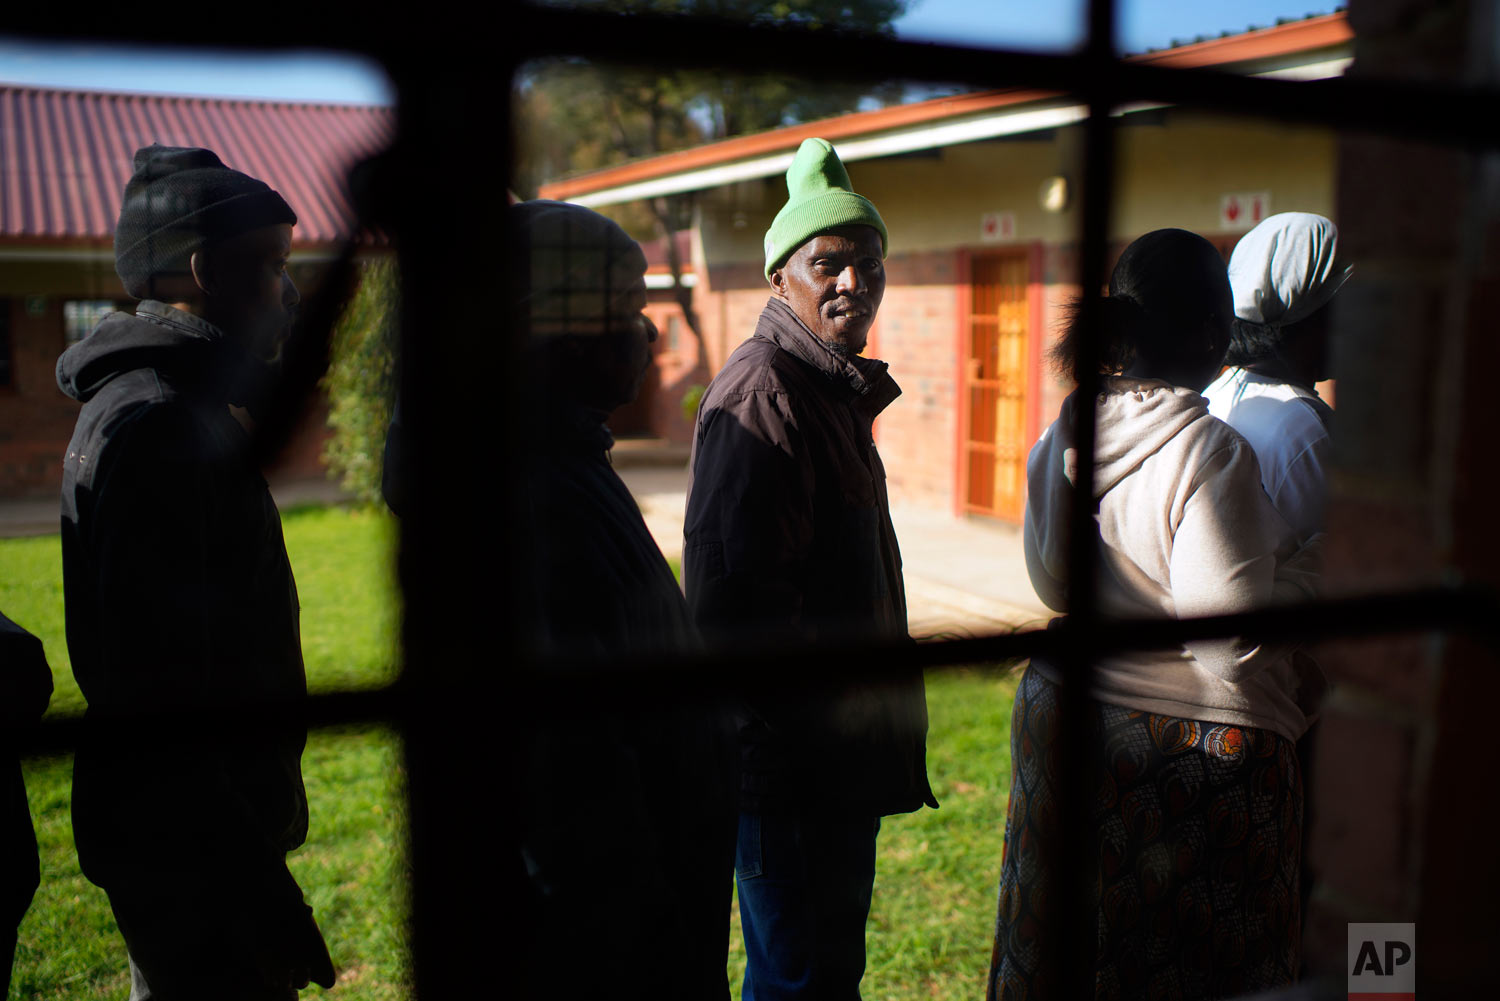 Locals line up to cast their vote May 8, 2019, general elections in Soweto, South Africa. (AP Photo/Jerome Delay)